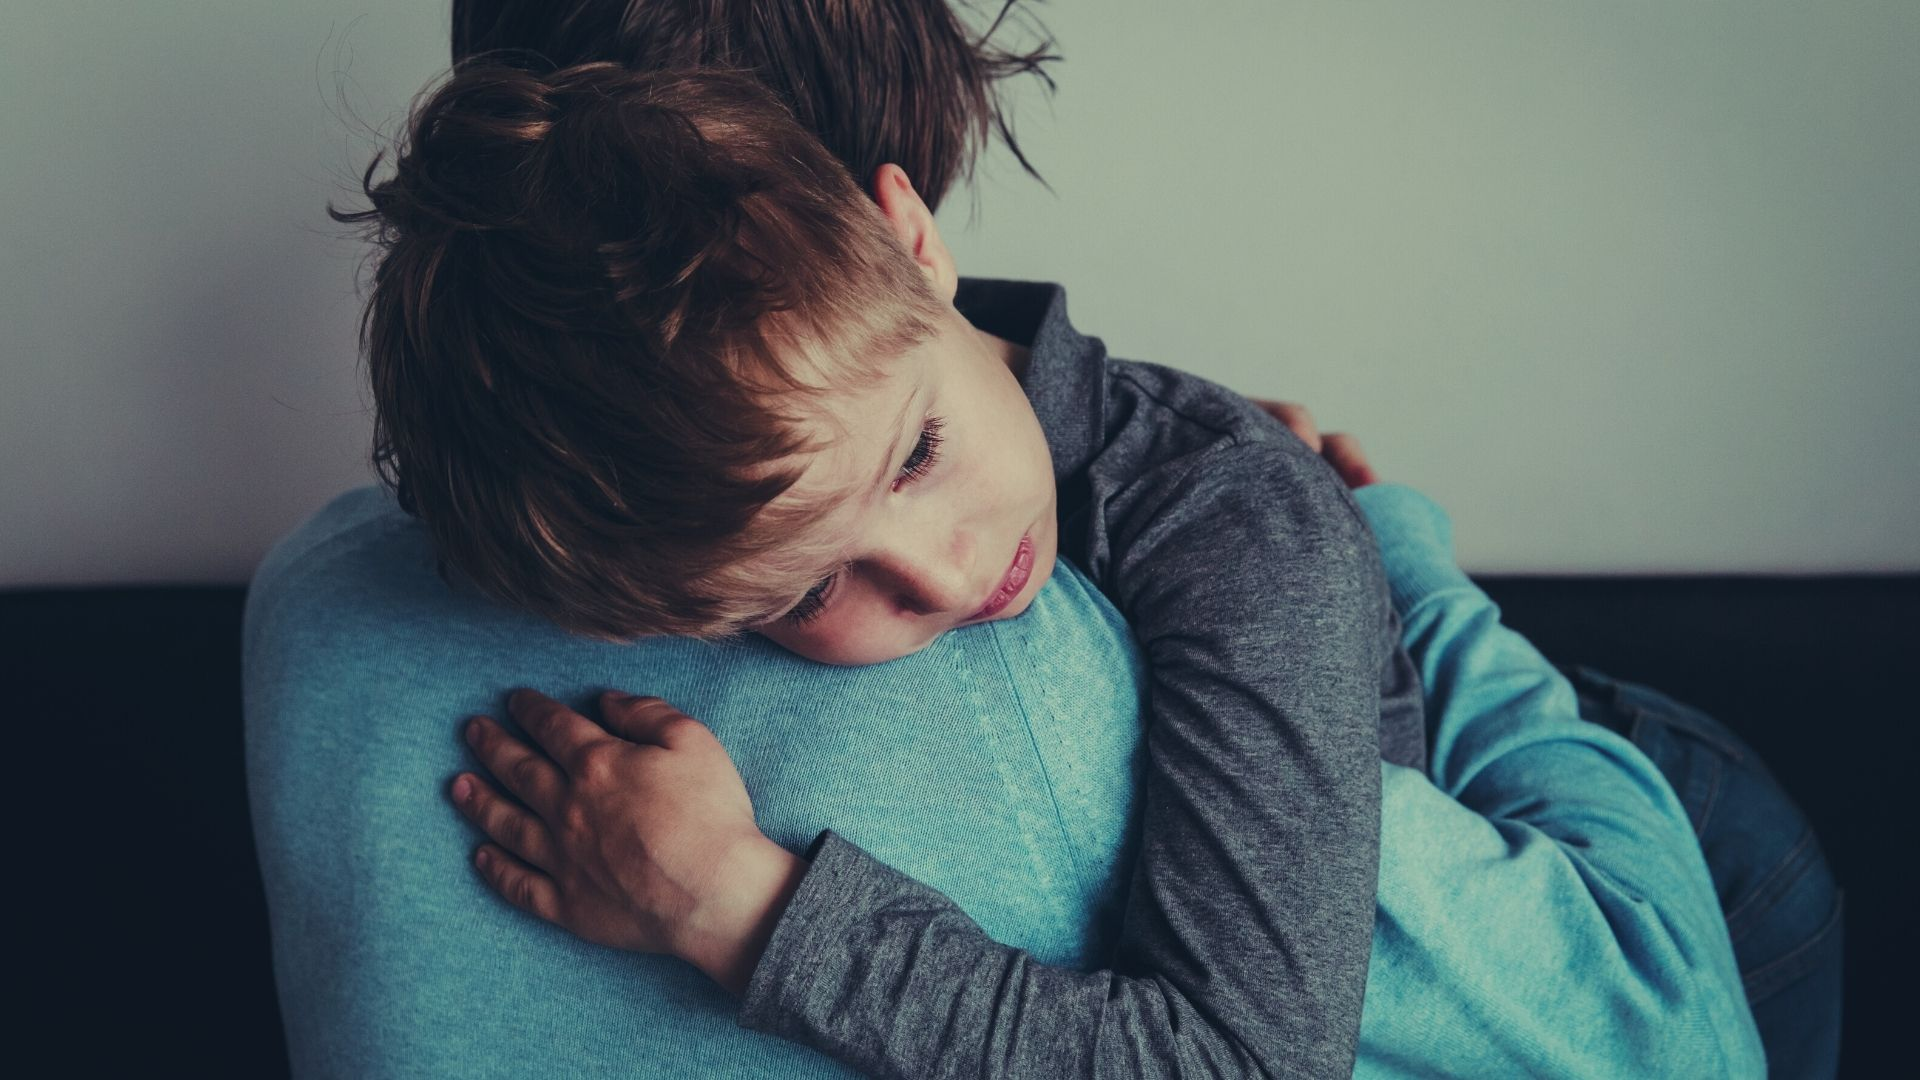 Tips for Parents Dealing with Their Child's Anxiety